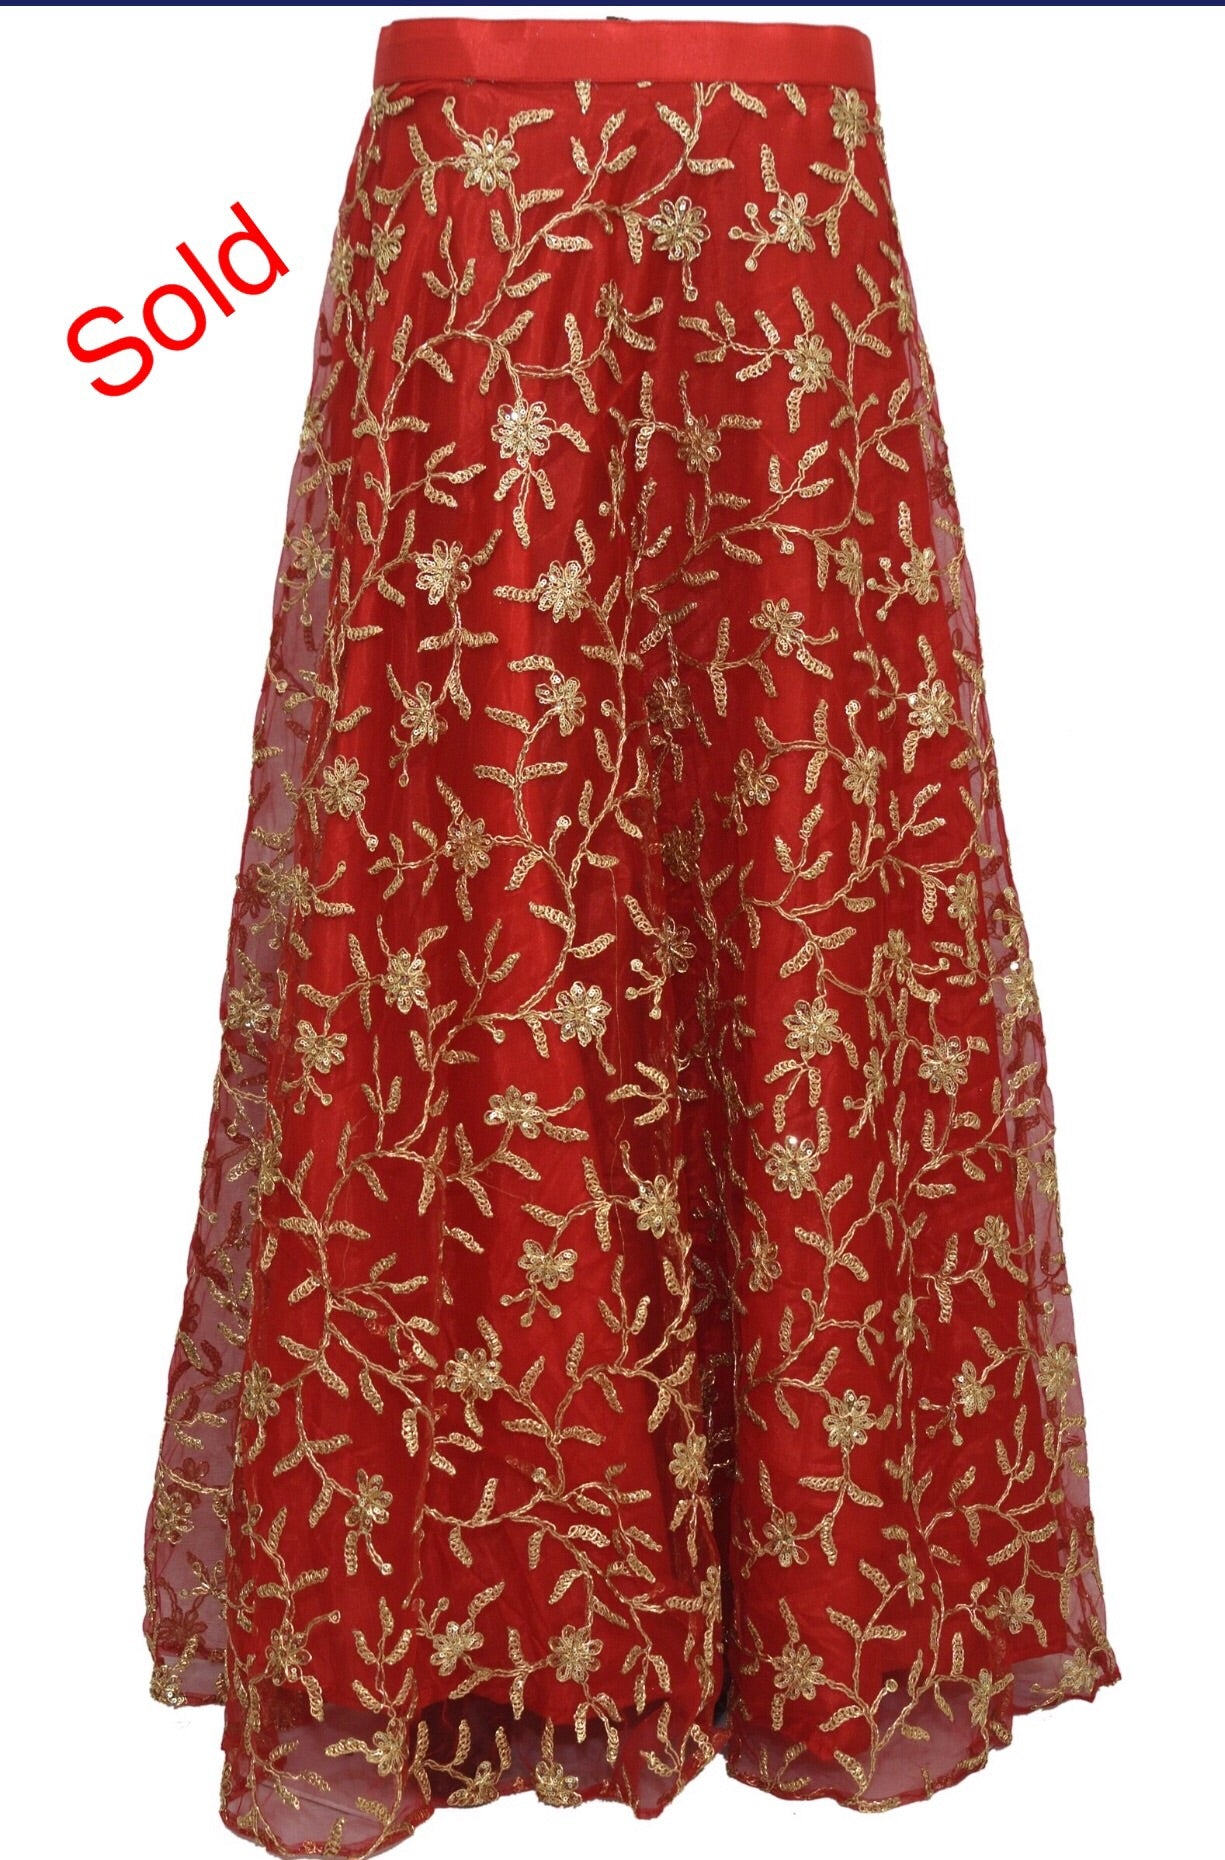 Fancy long skirt #fdn1807-101